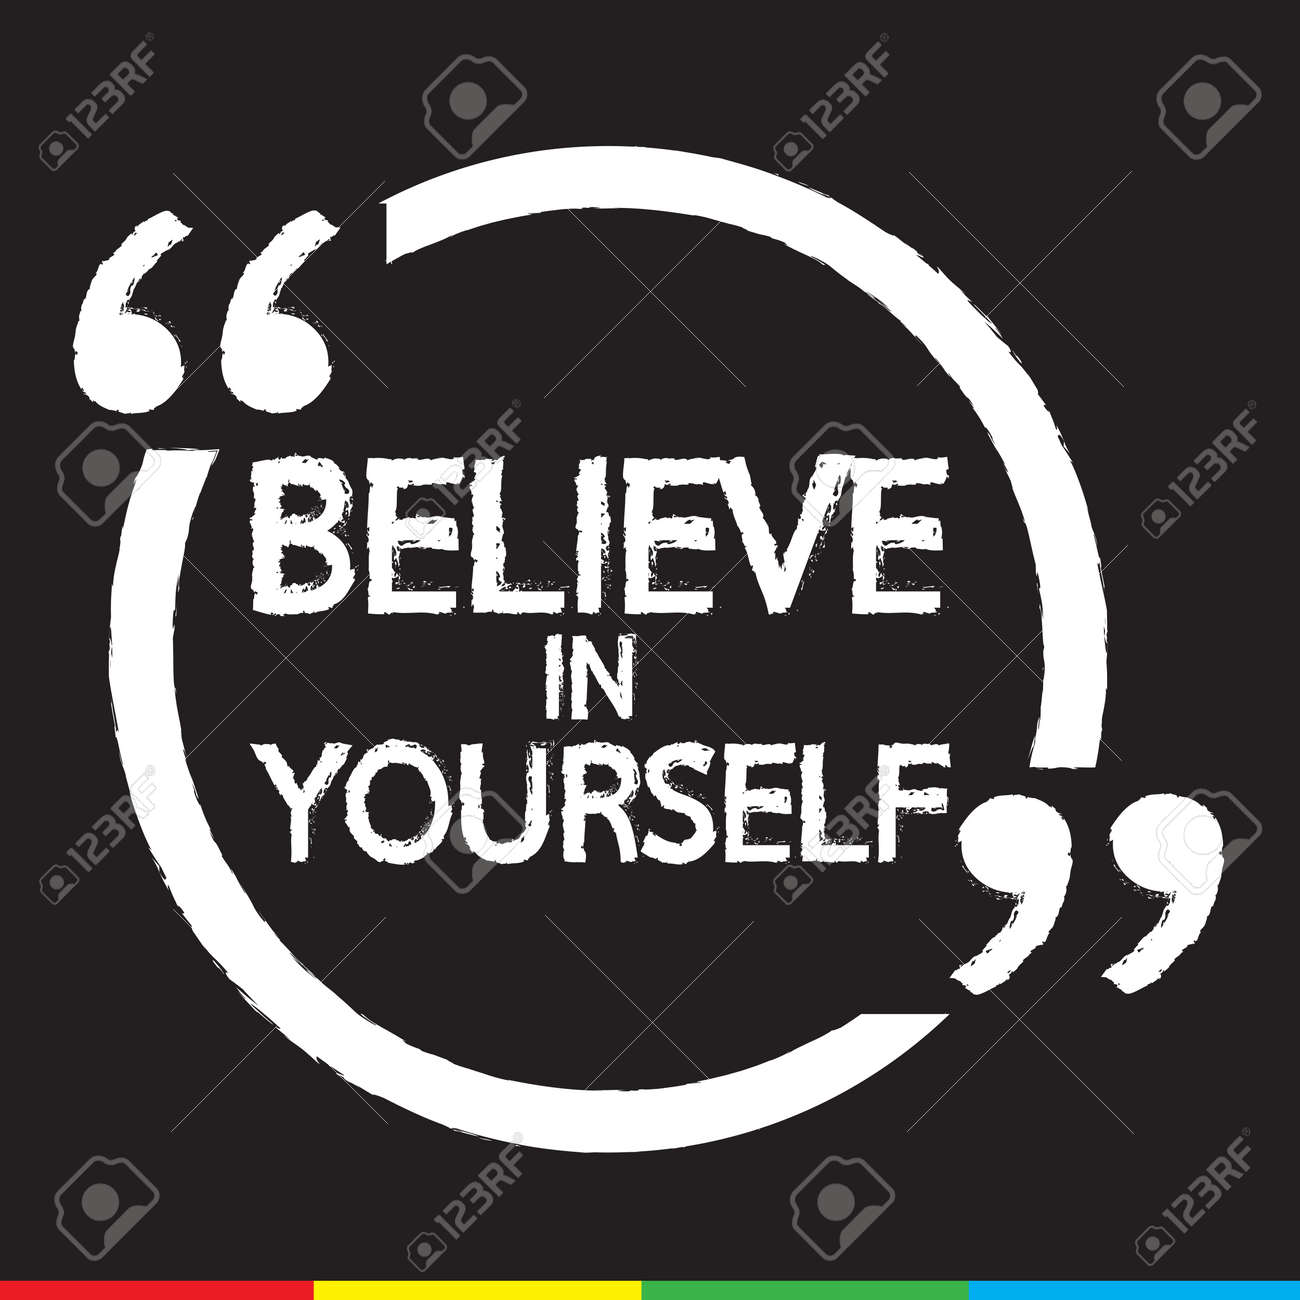 Believe In Yourself Lettering Illustration Design Royalty Free